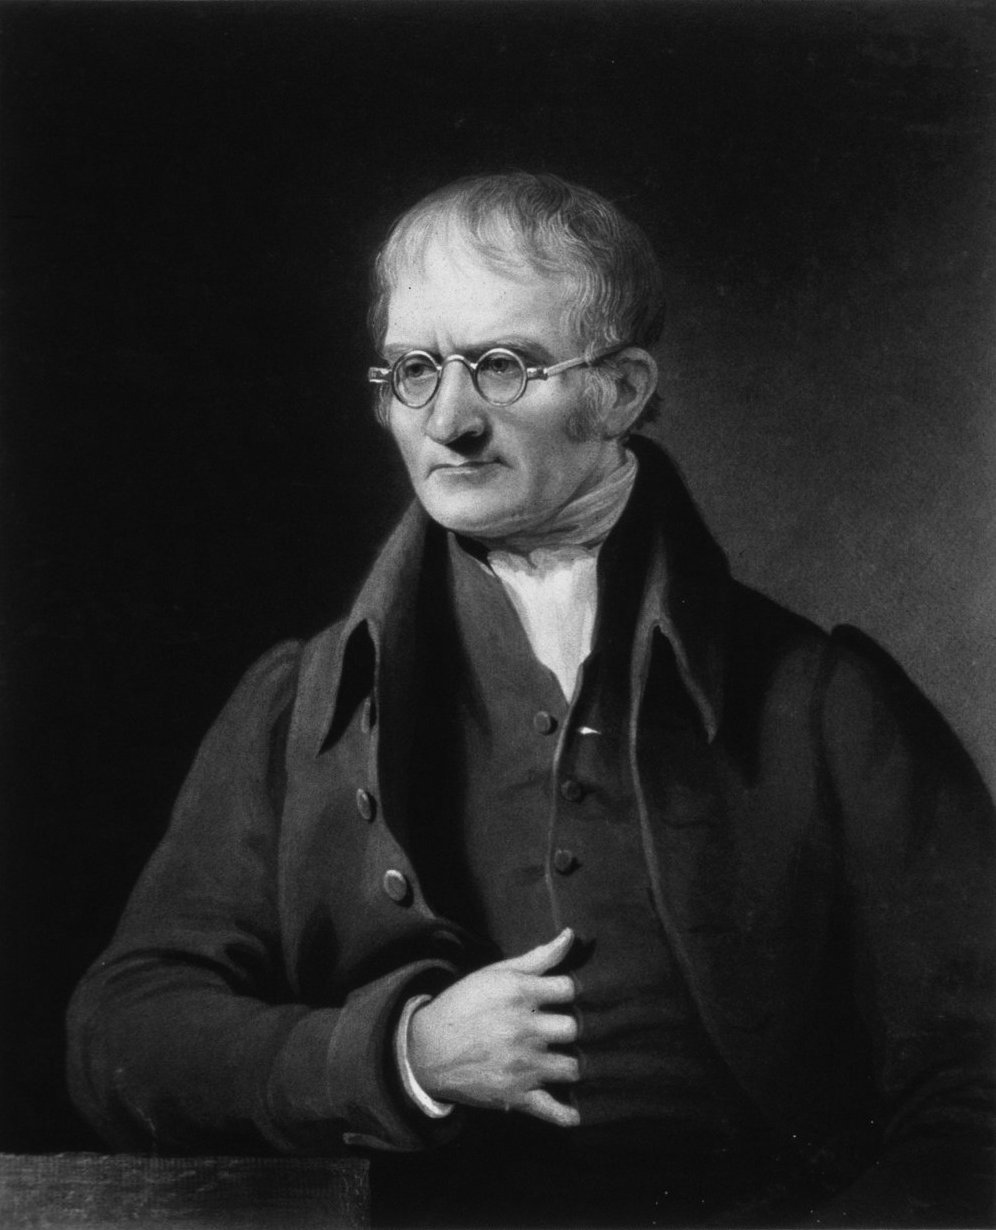 http://upload.wikimedia.org/wikipedia/commons/d/d4/John_Dalton_by_Charles_Turner.jpg